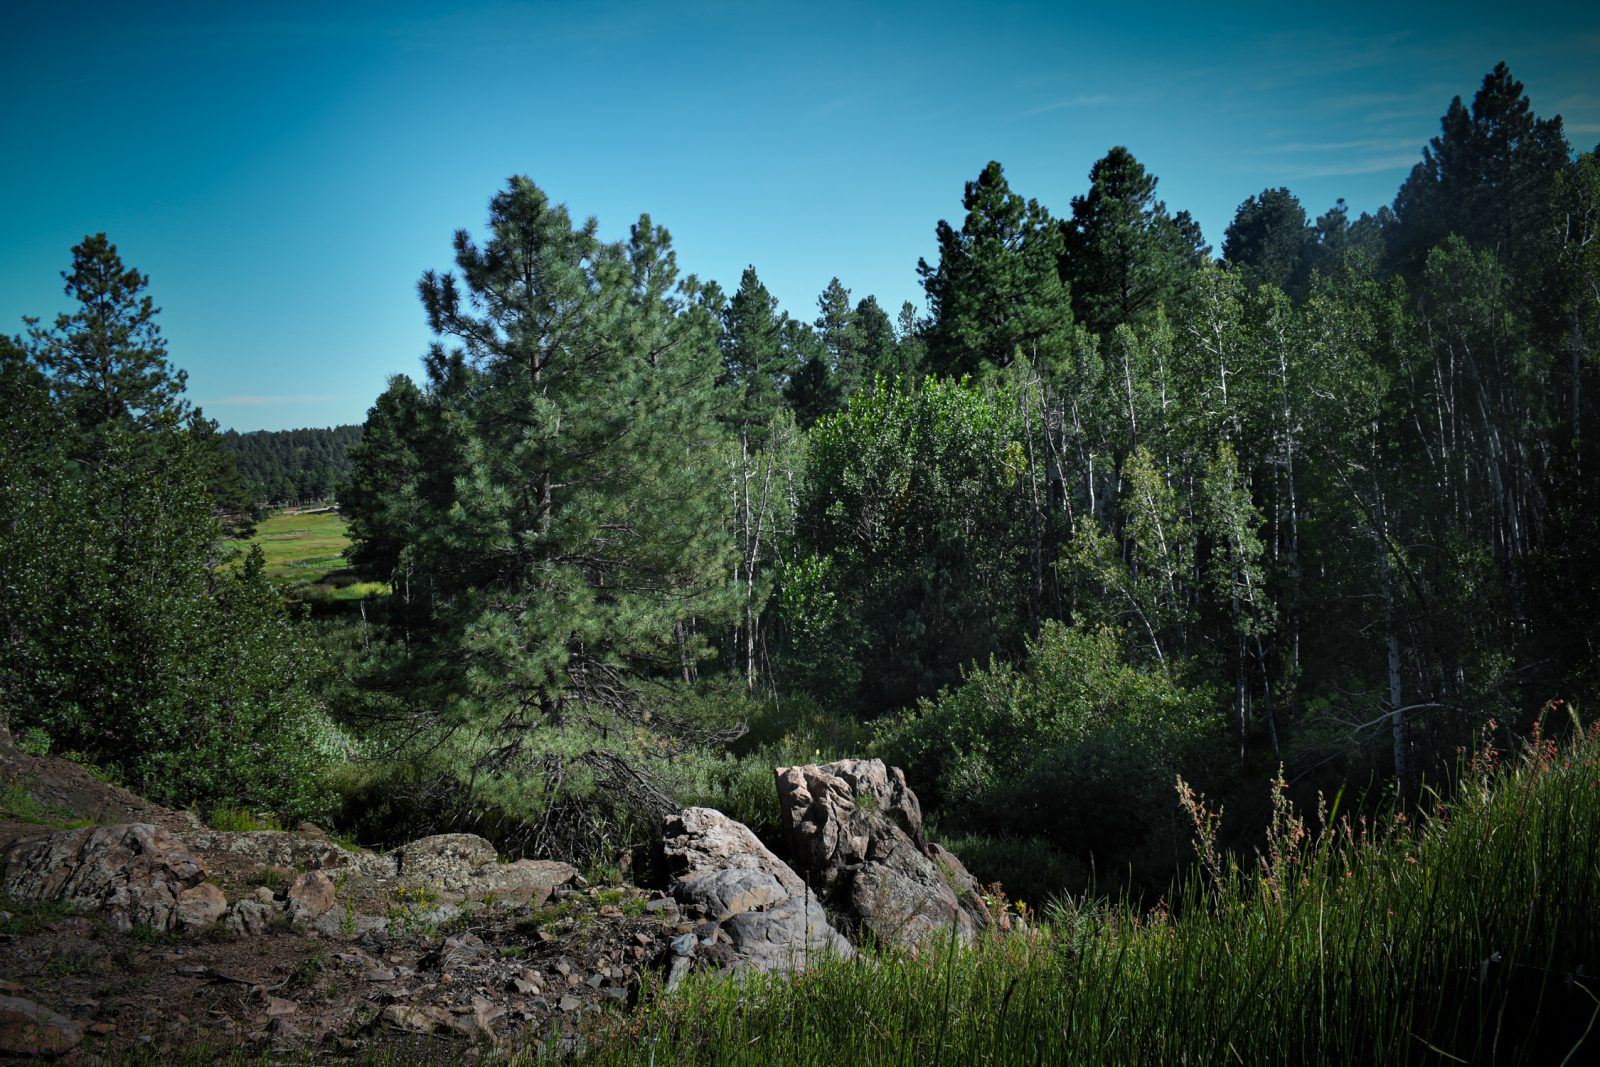 The Ponderosa Pines in Late Afternoon